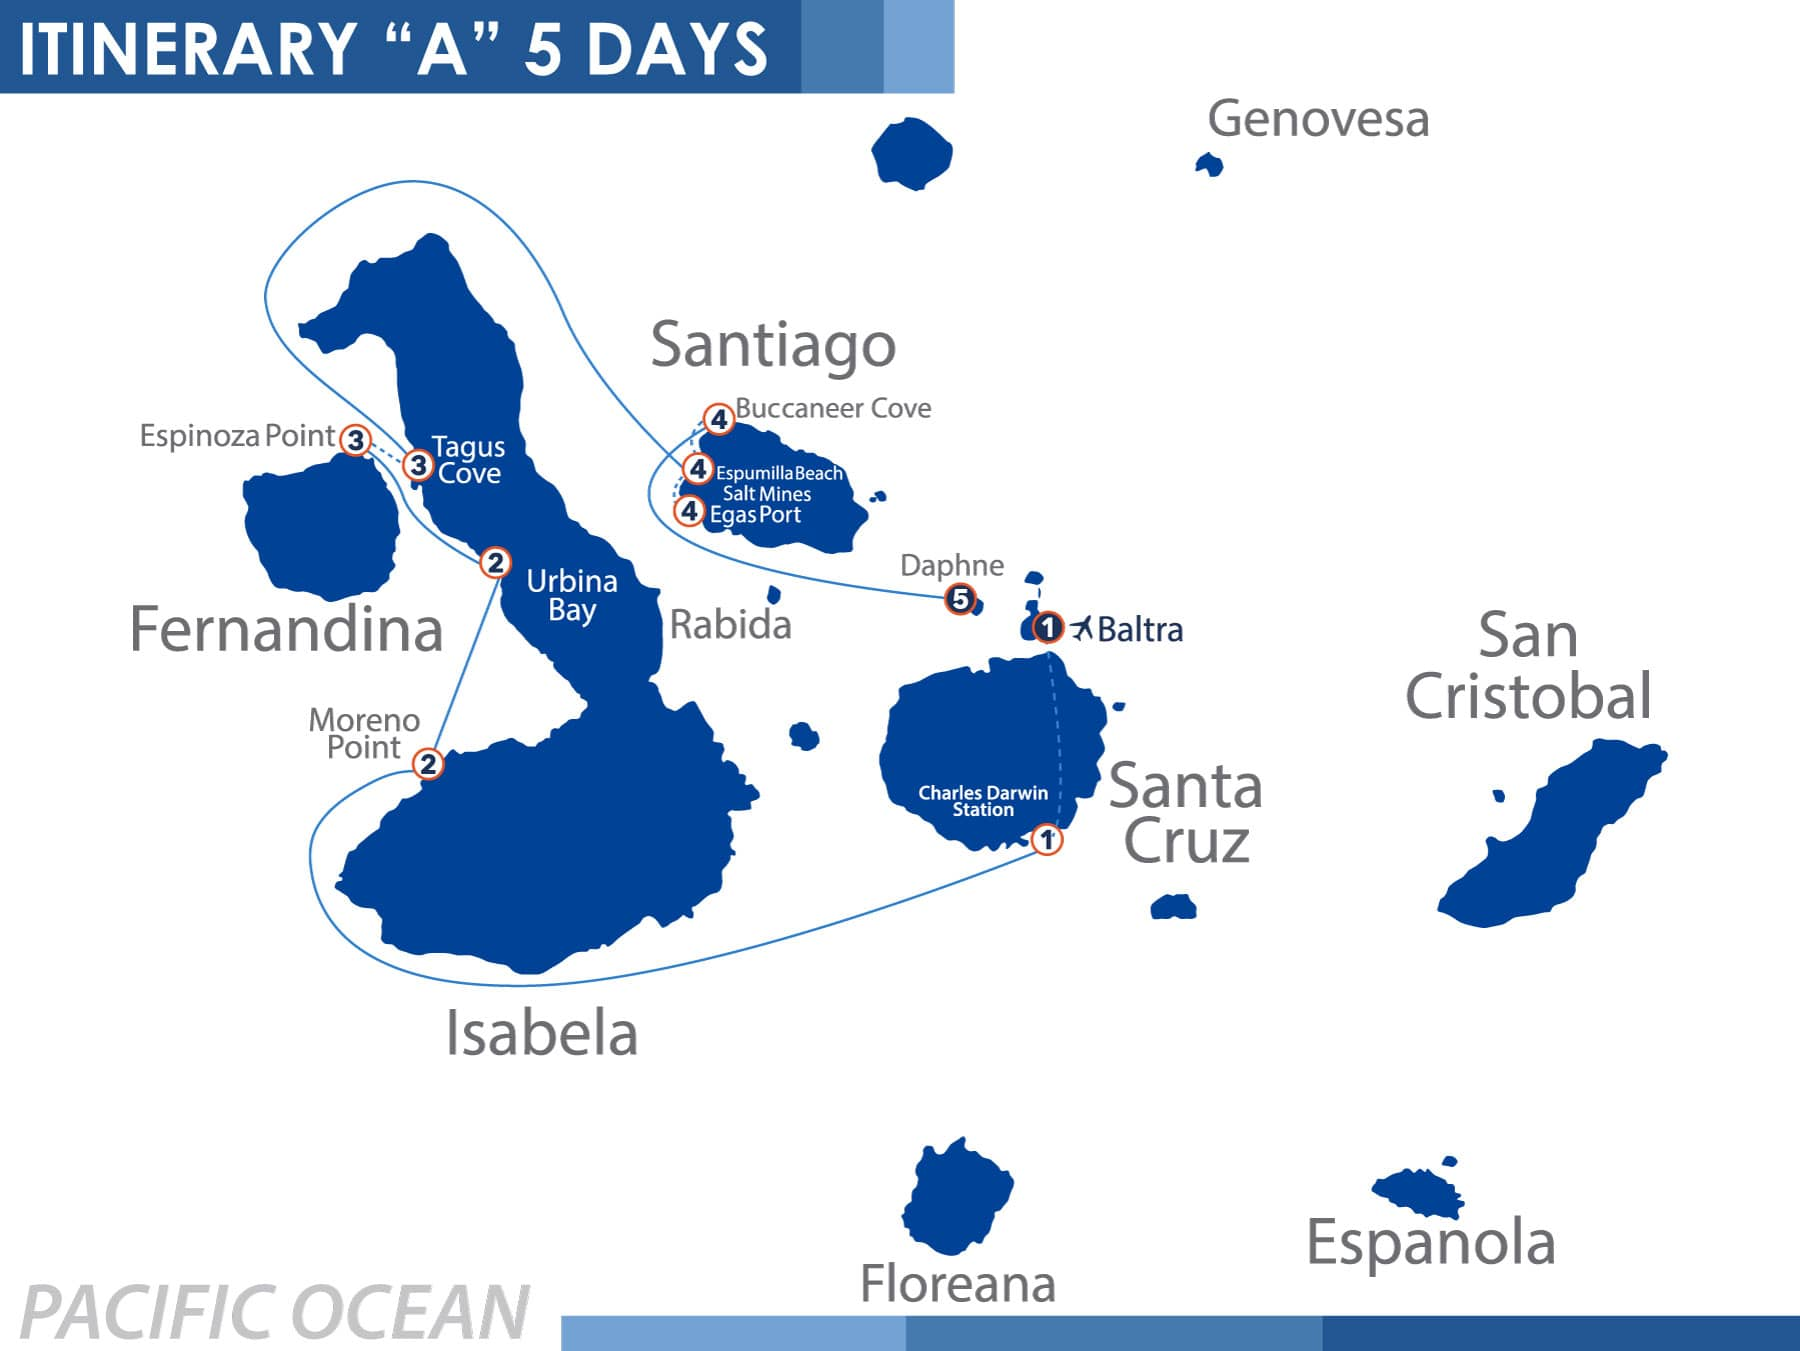 North Itinerary Nemo III Galapagos Cruise 5 Days